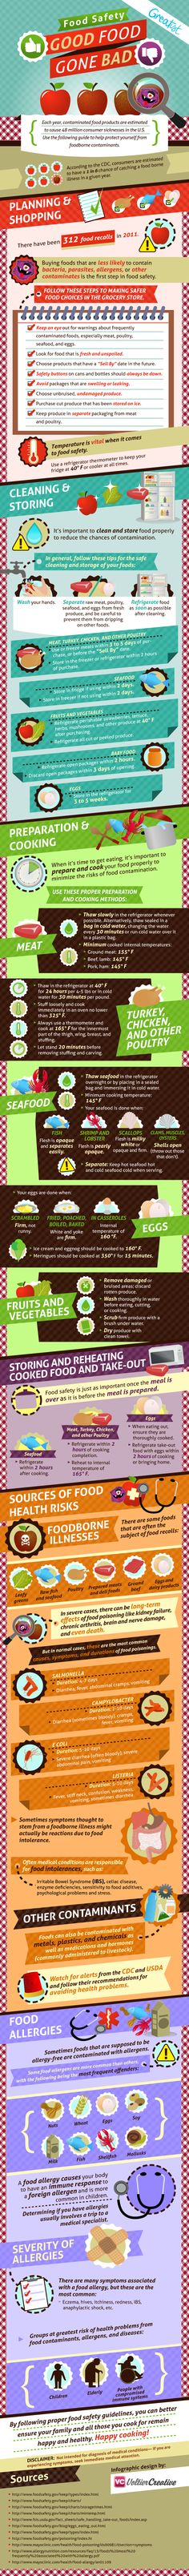 Here is a fantastic infographic about food safety and handling food - Good Food Gone Bad: Your Guide to Food Safety. Great information and reminders for healthy eating.